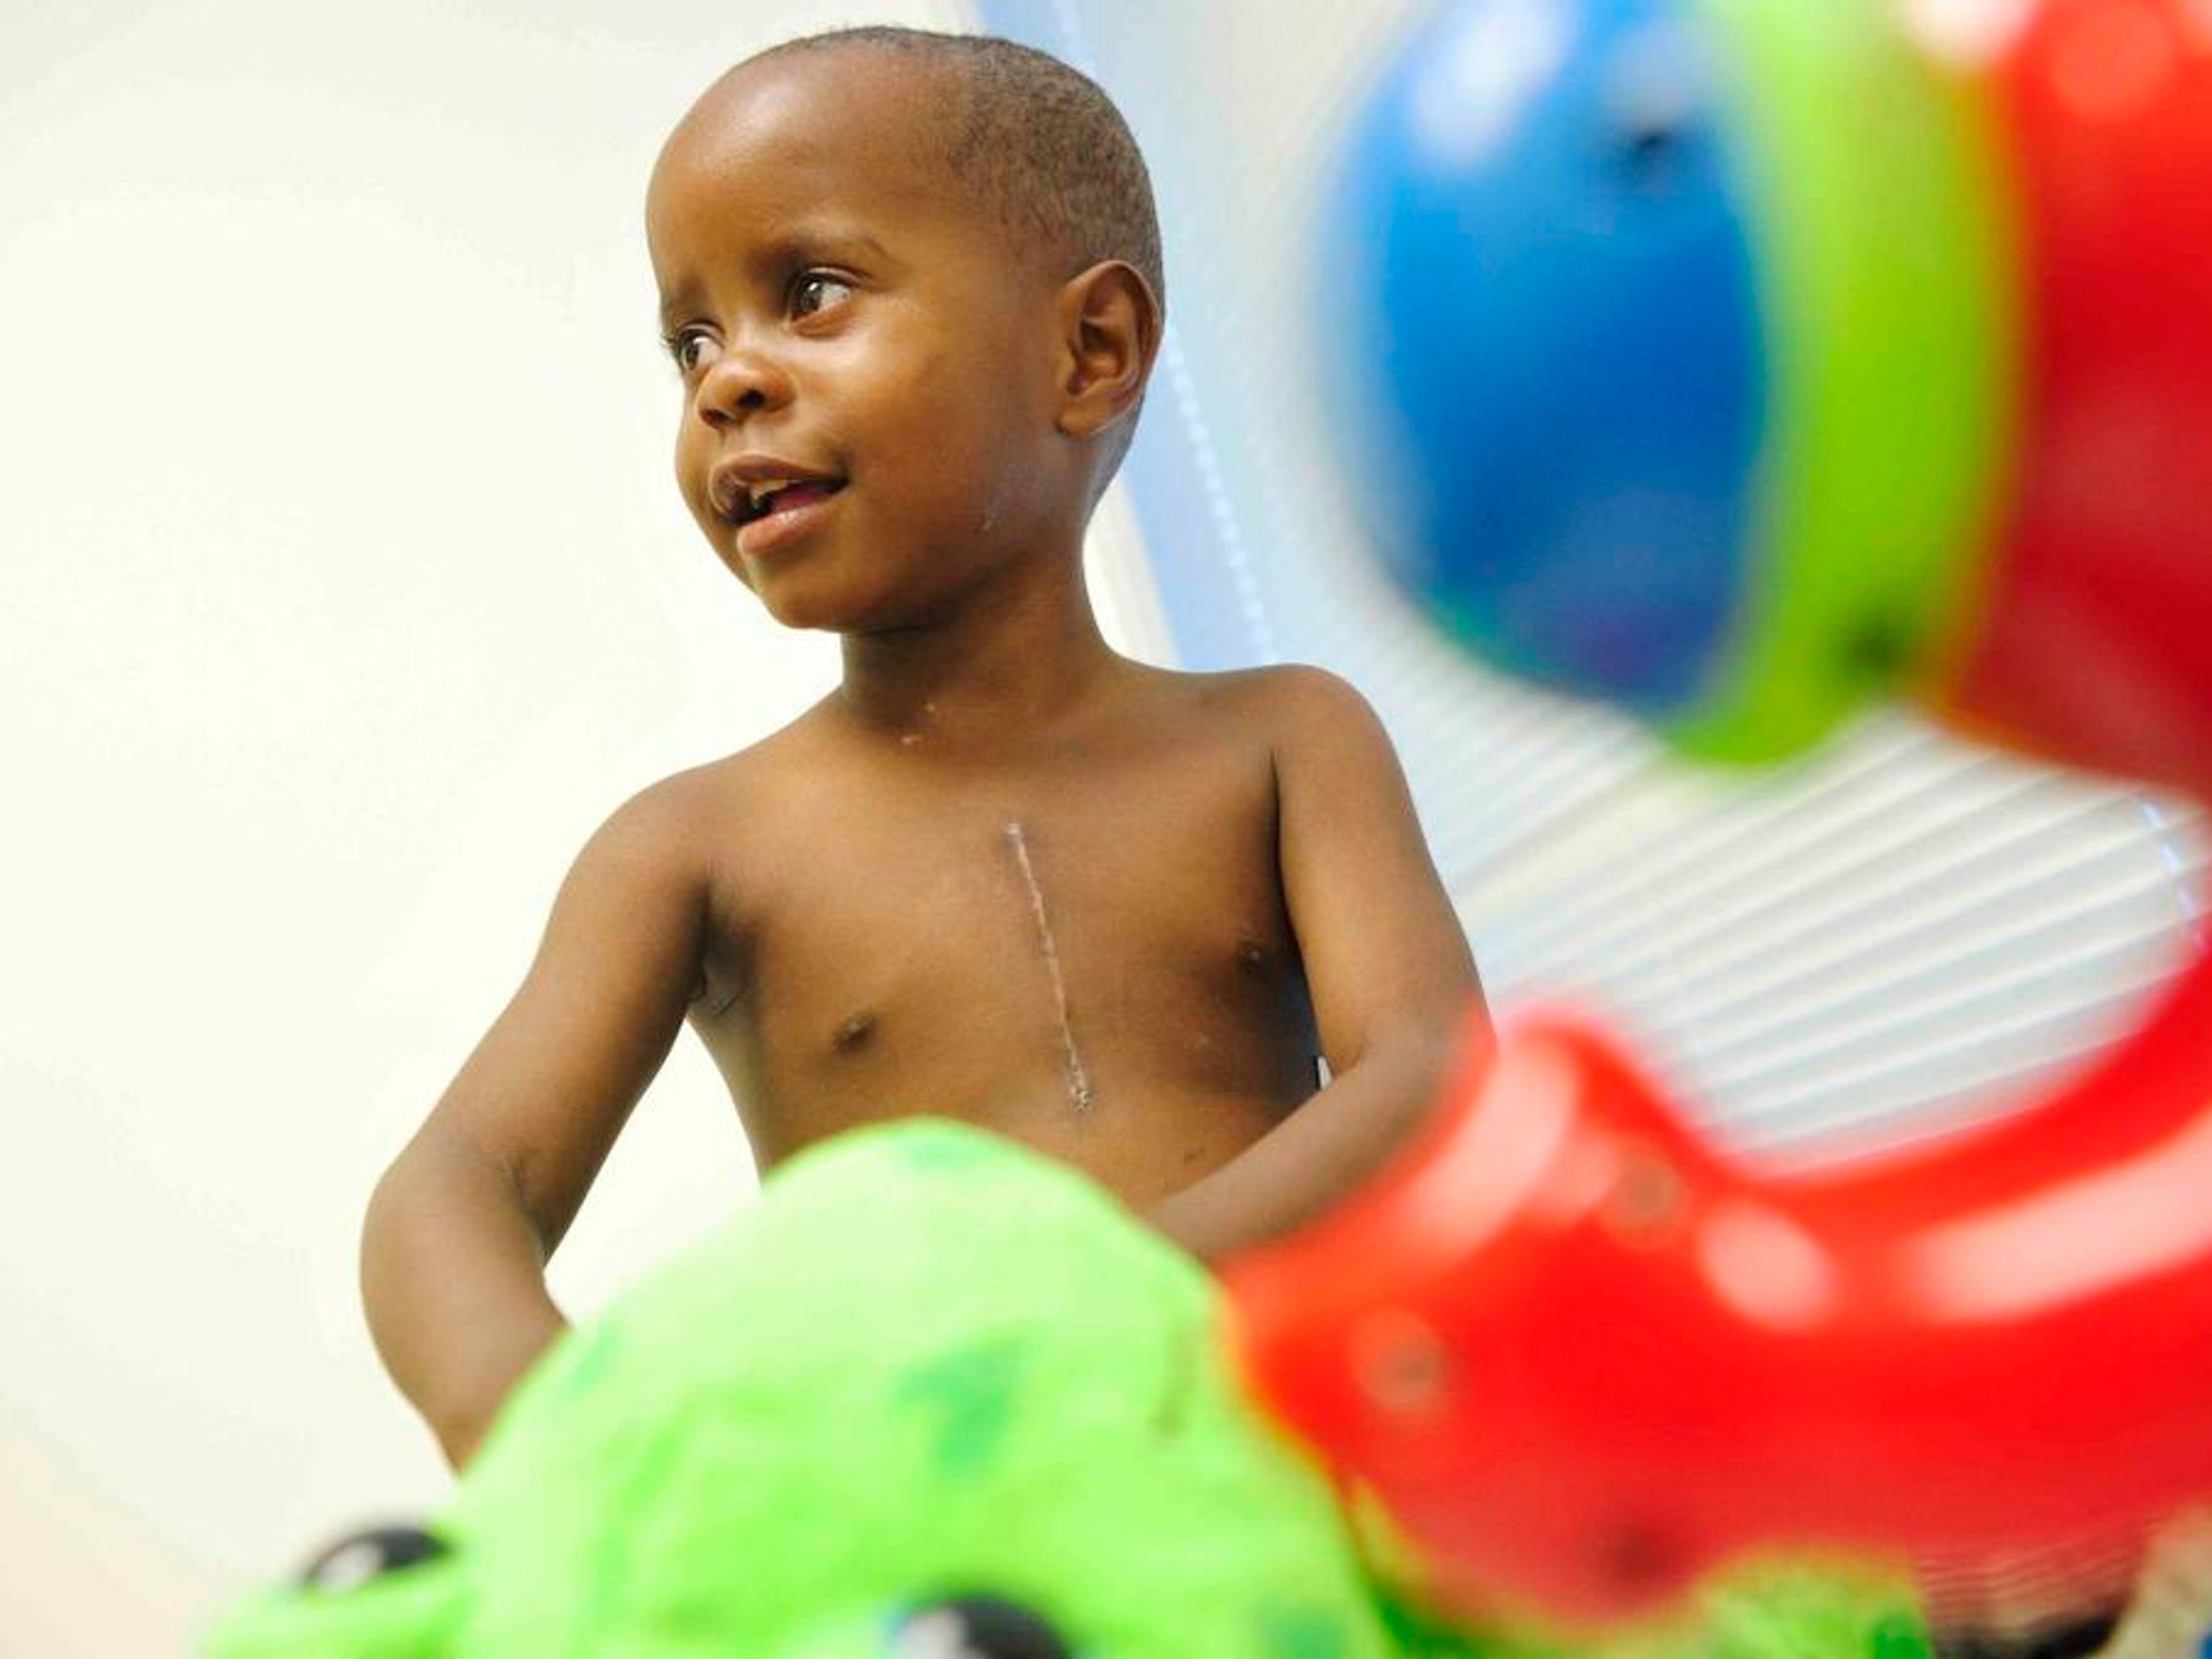 3-year-old Ian Muhereza, from Uganda, plays with a toy during a final post-op appointment after heart surgery as a newborn at Monroe Carell Jr. Children's Hospital at Vanderbilt in Nashville, Tenn. on May 30, 2014.